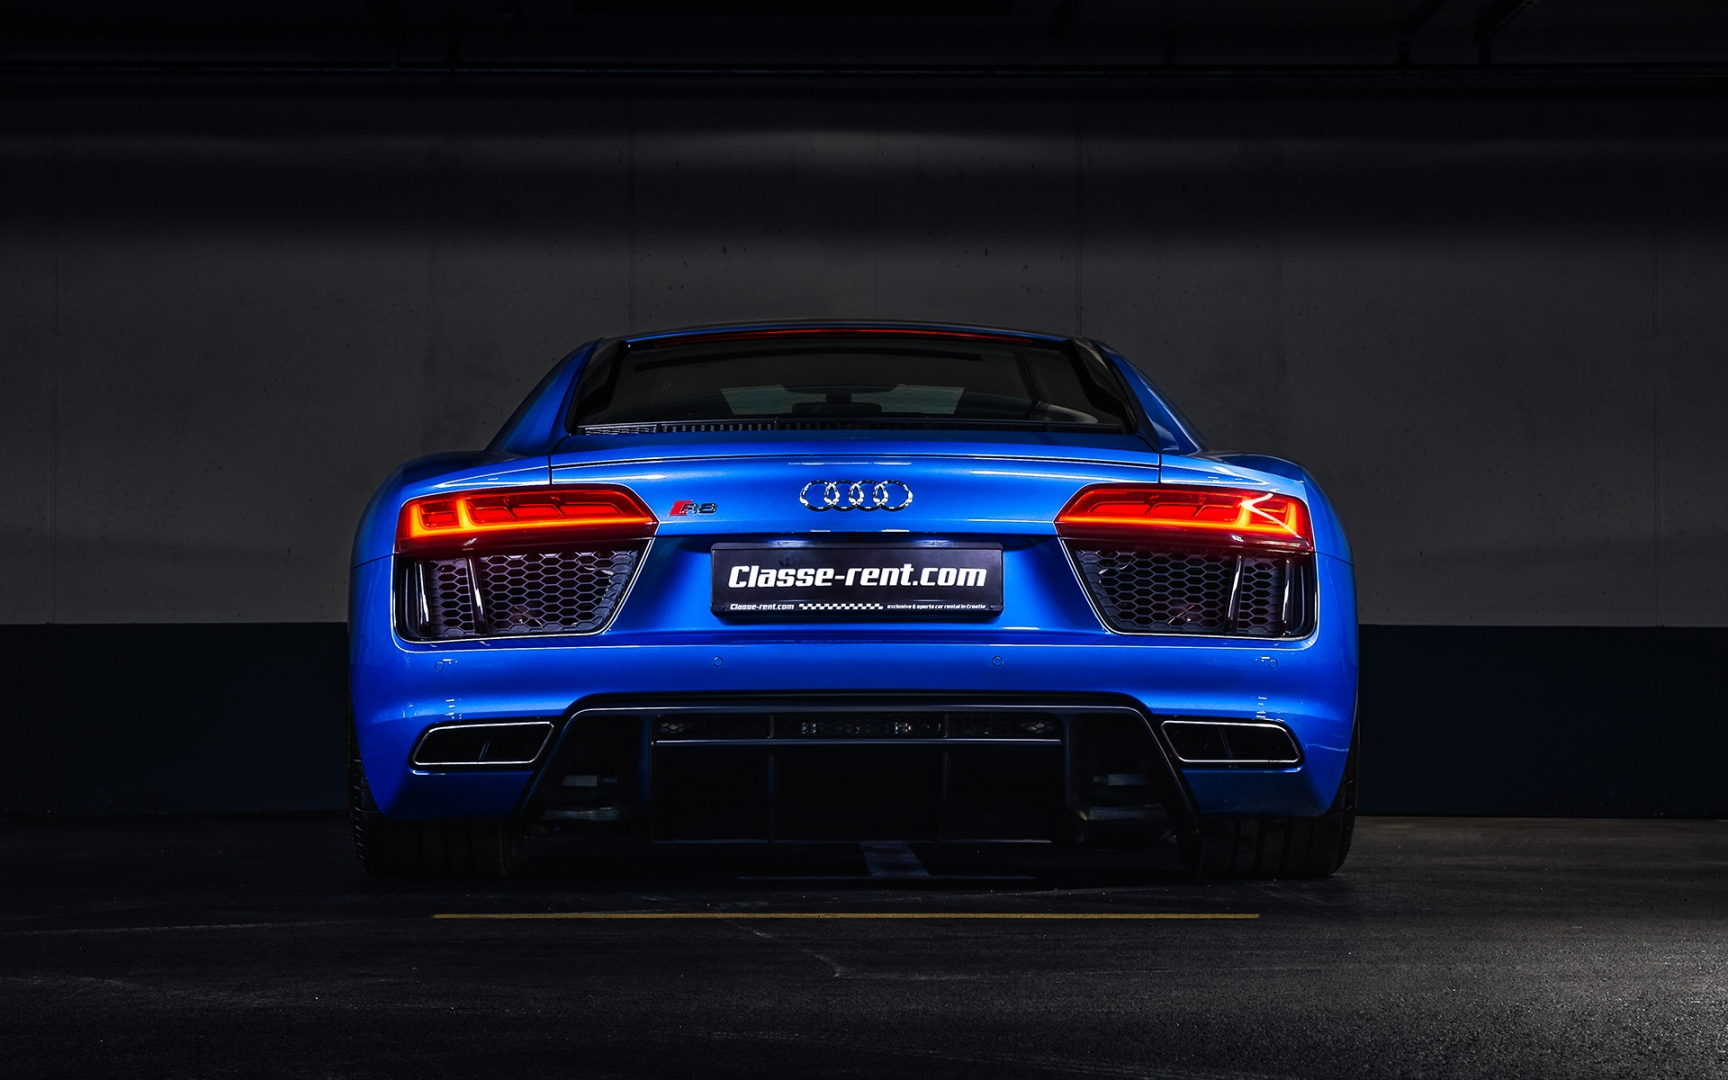 Audi R8 V10 Coupe Personal Vehicle